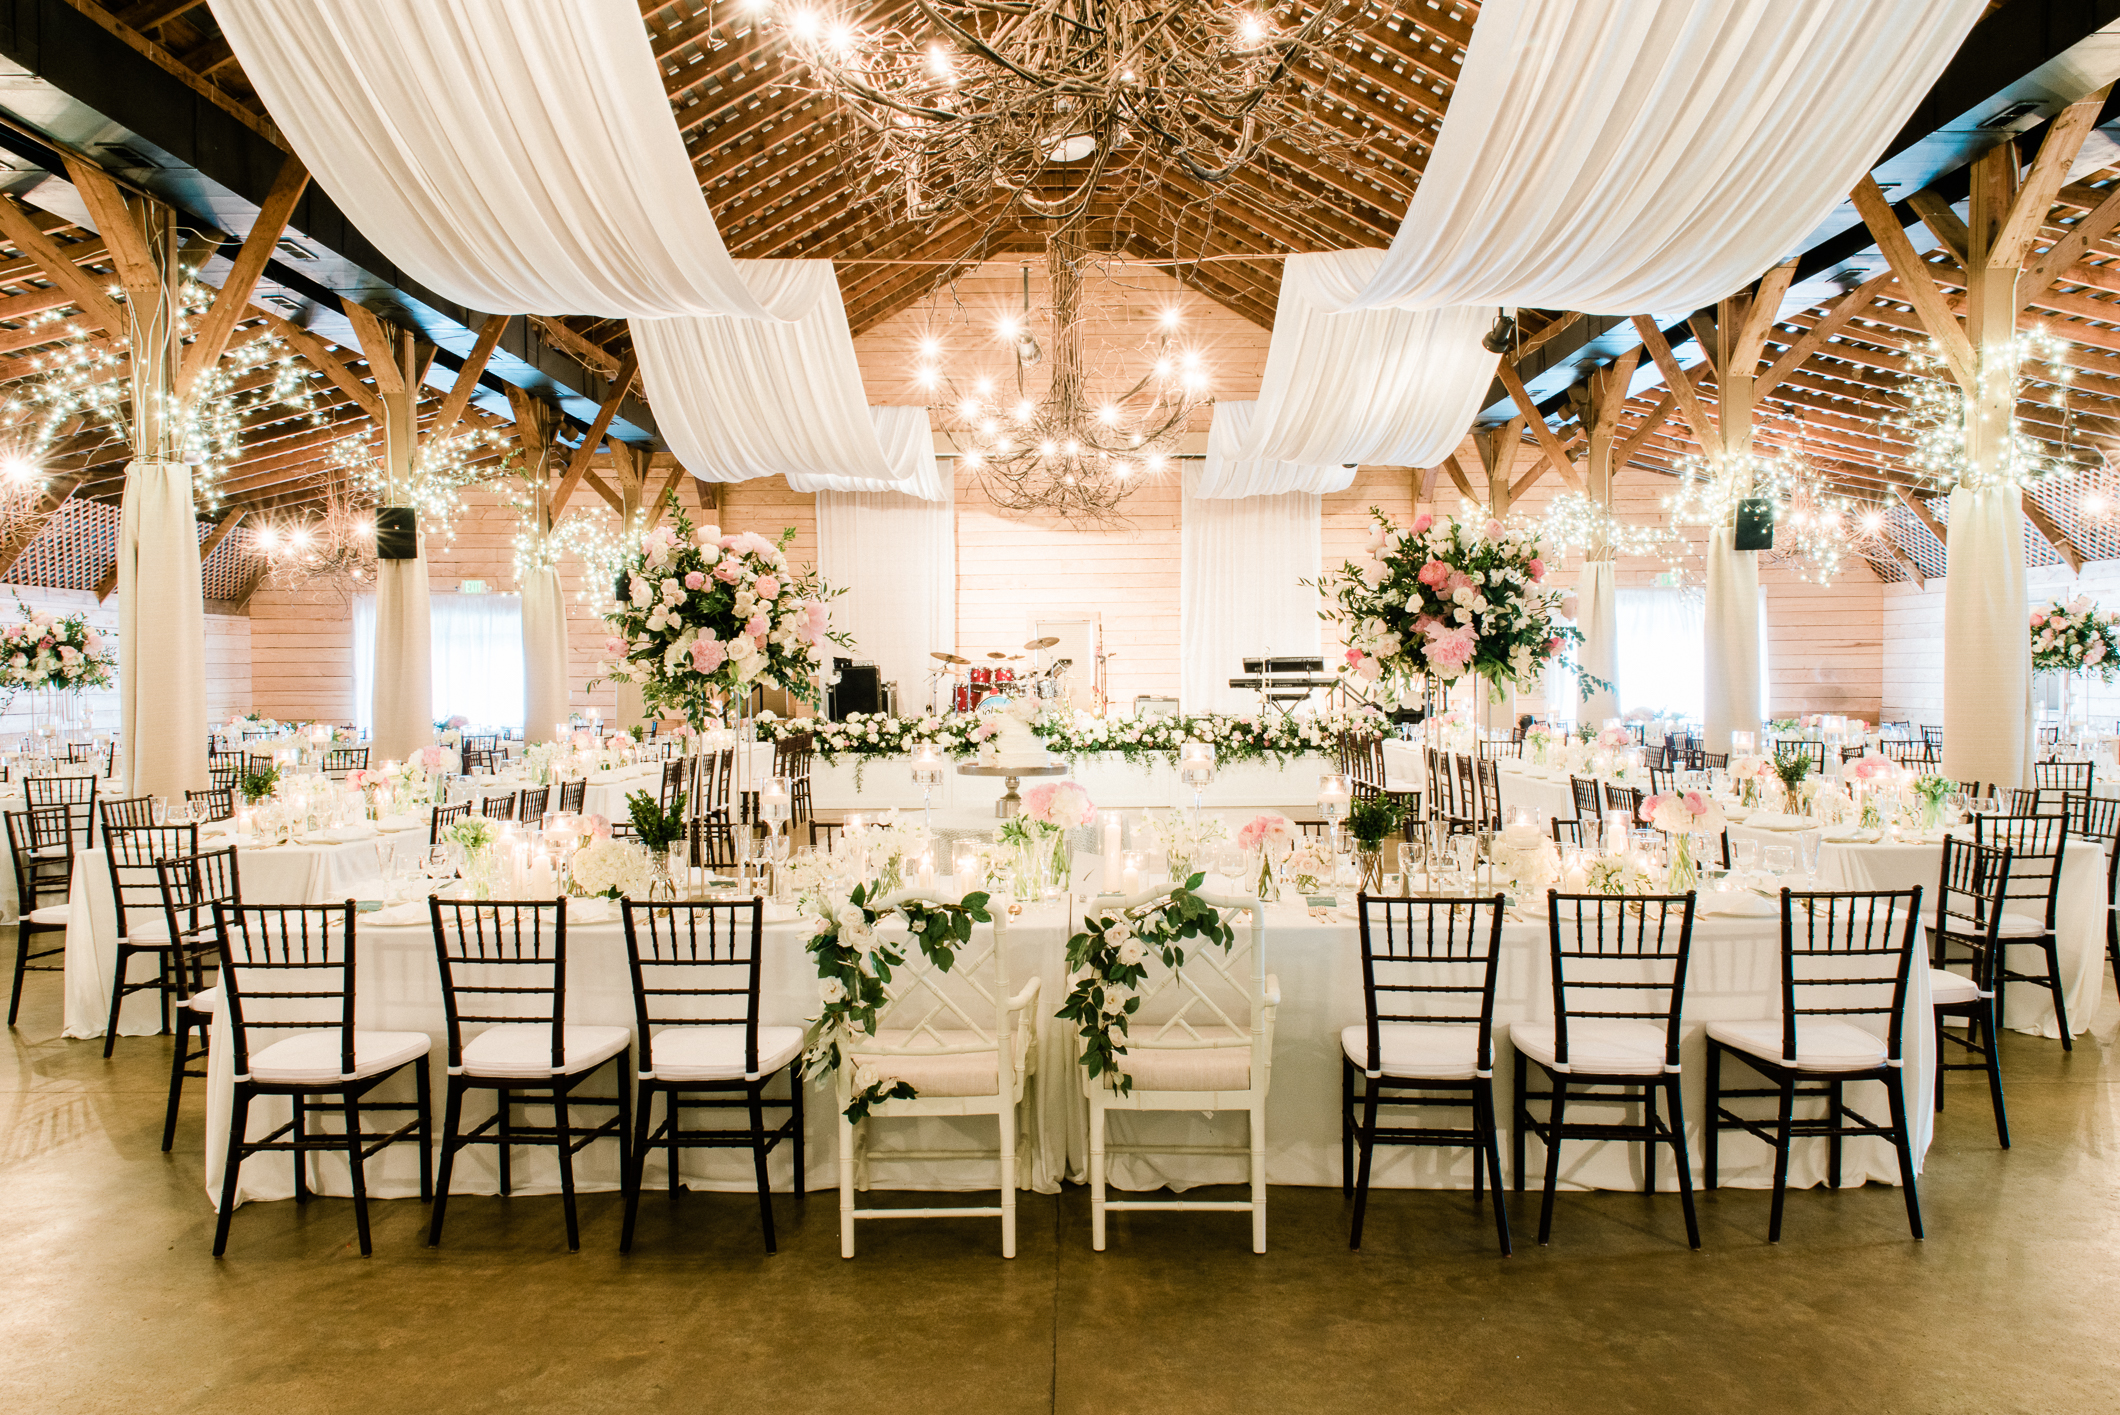 Fearrington Village wedding reception with long tables